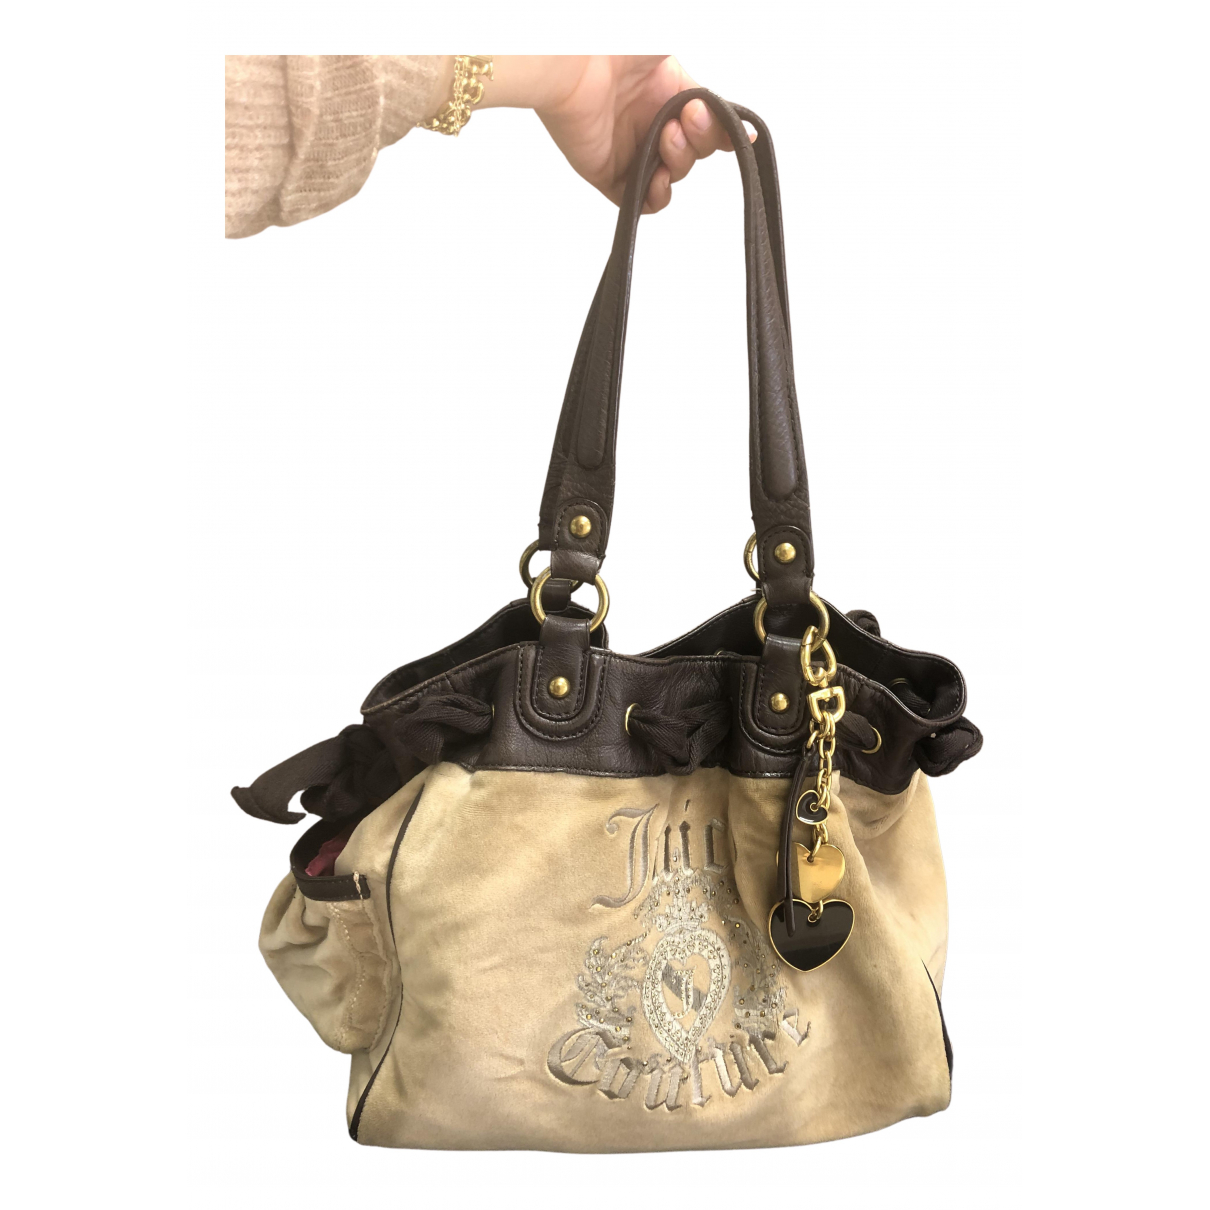 Juicy Couture N Brown Velvet handbag for Women N